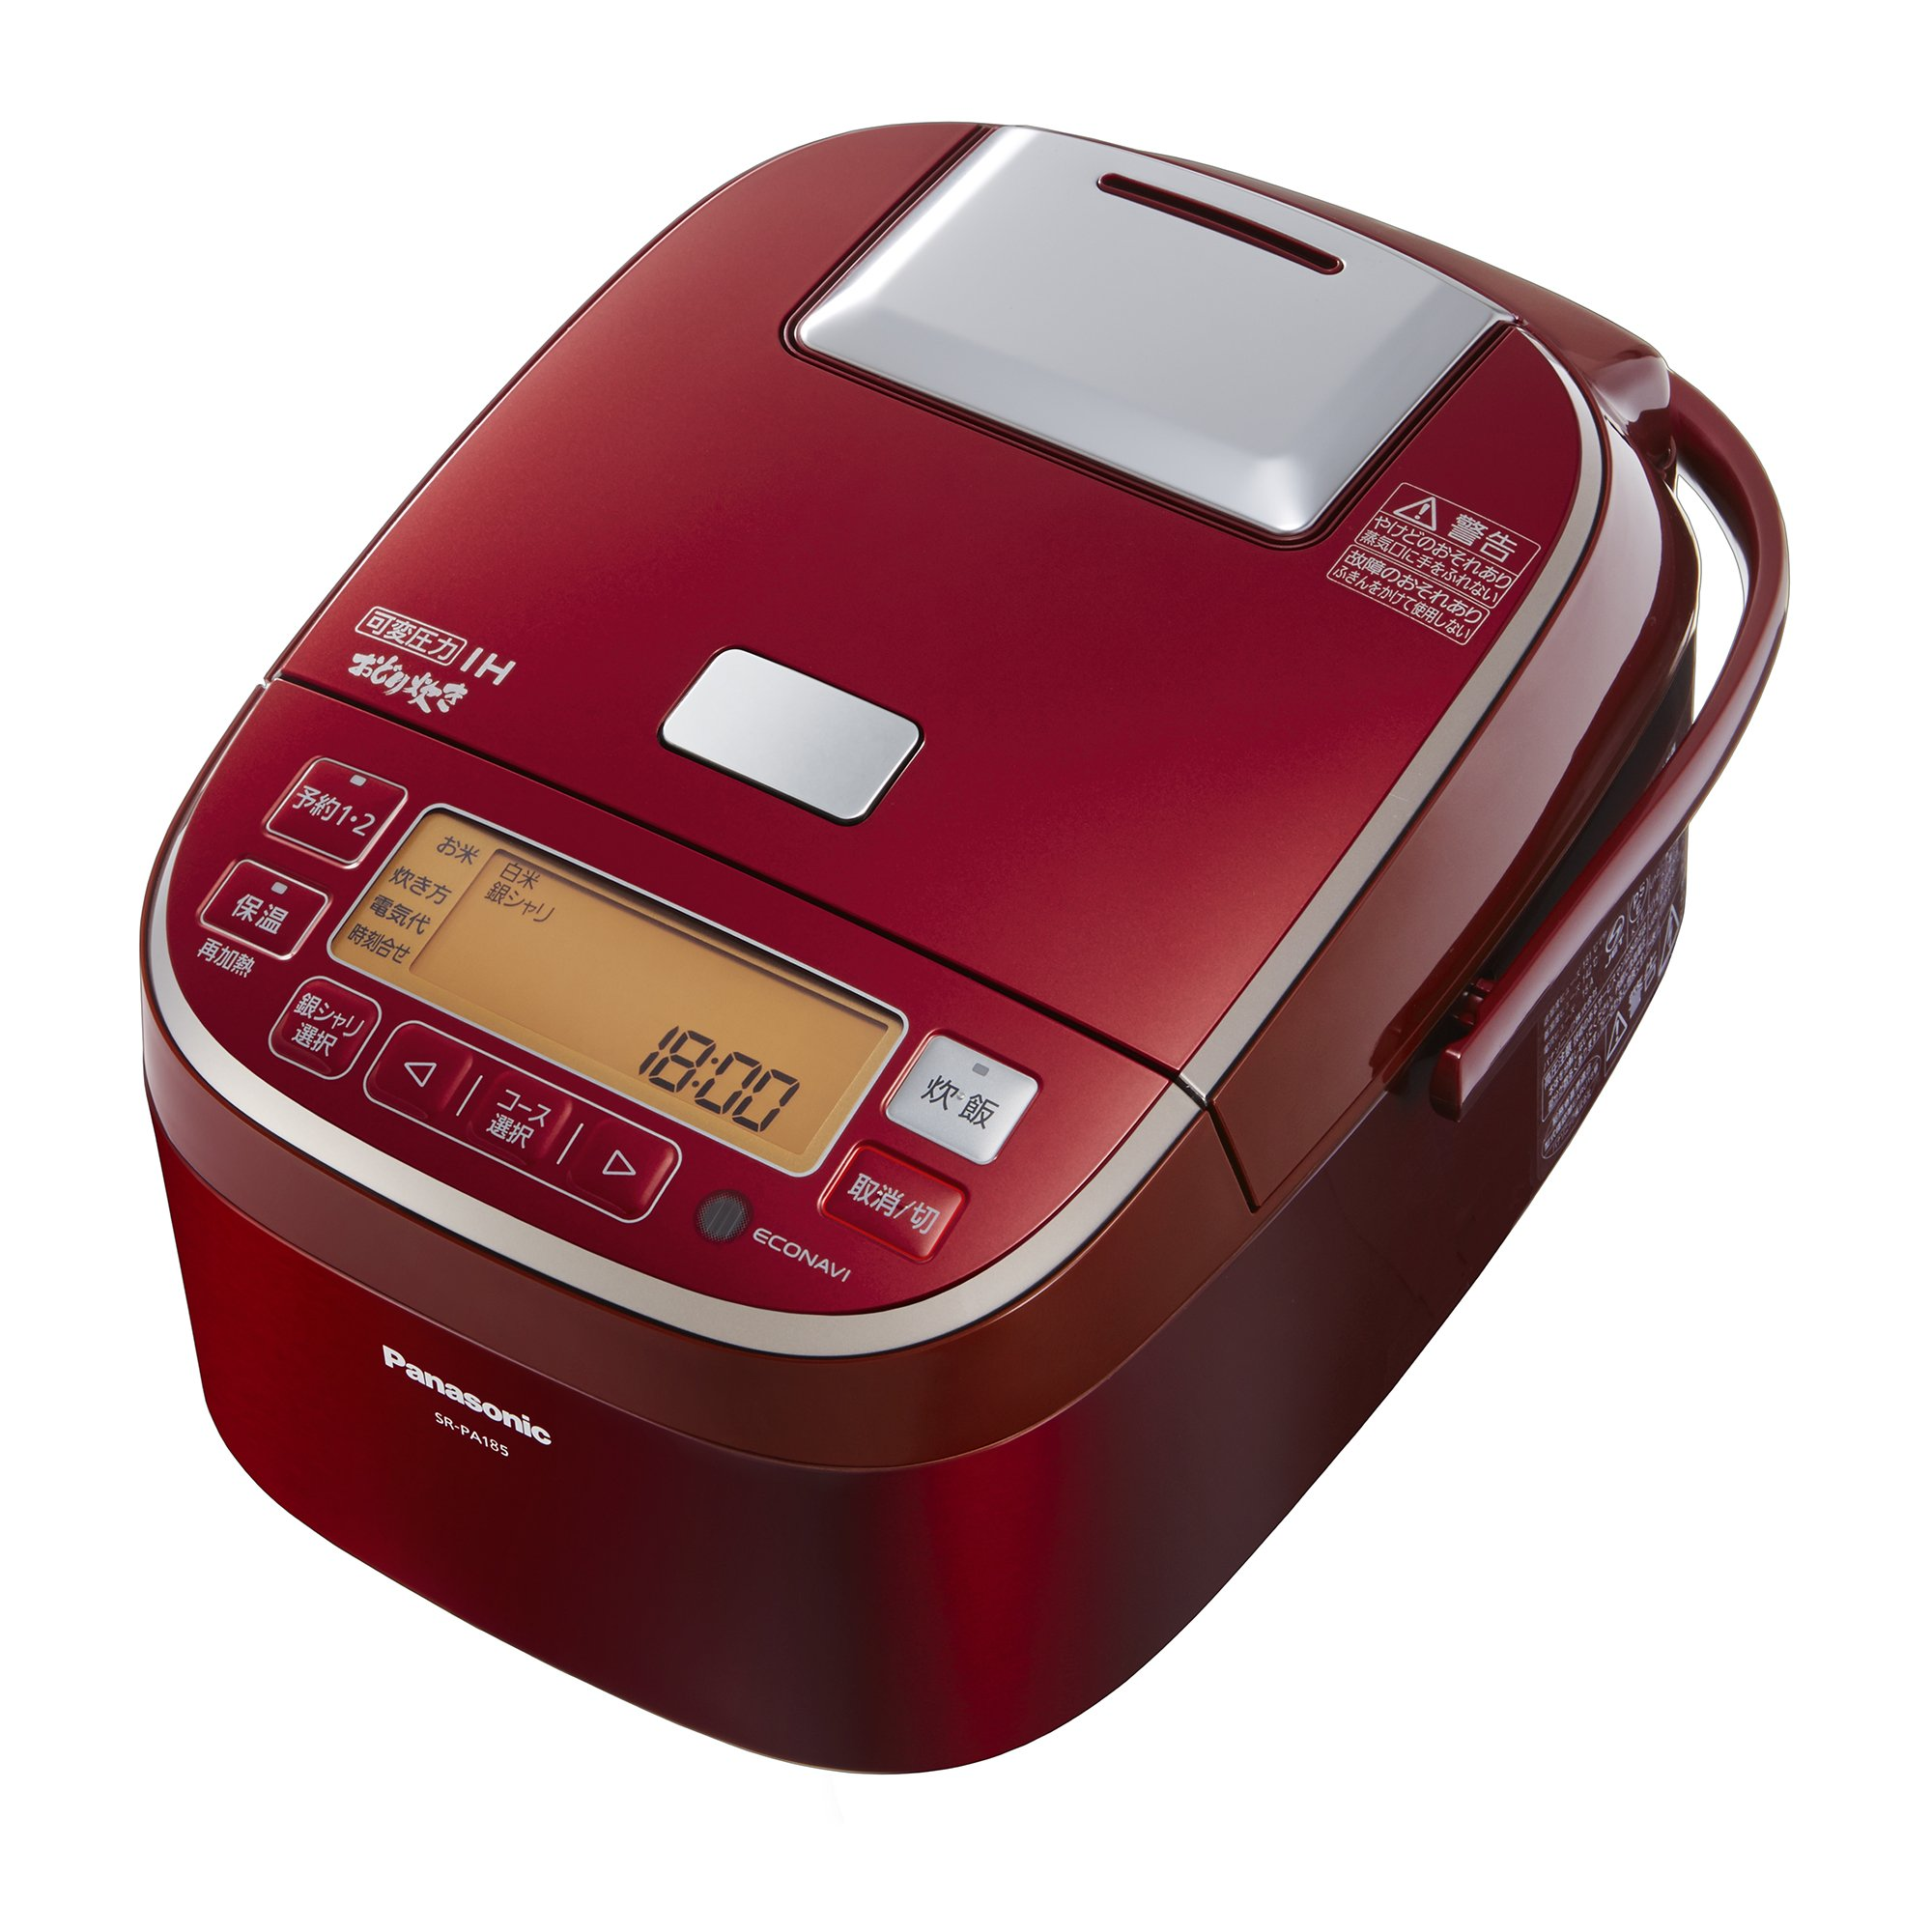 Panasonic variable pressure IH rice cookers (1 bushel cook) Red dance cook SR-PA185-R